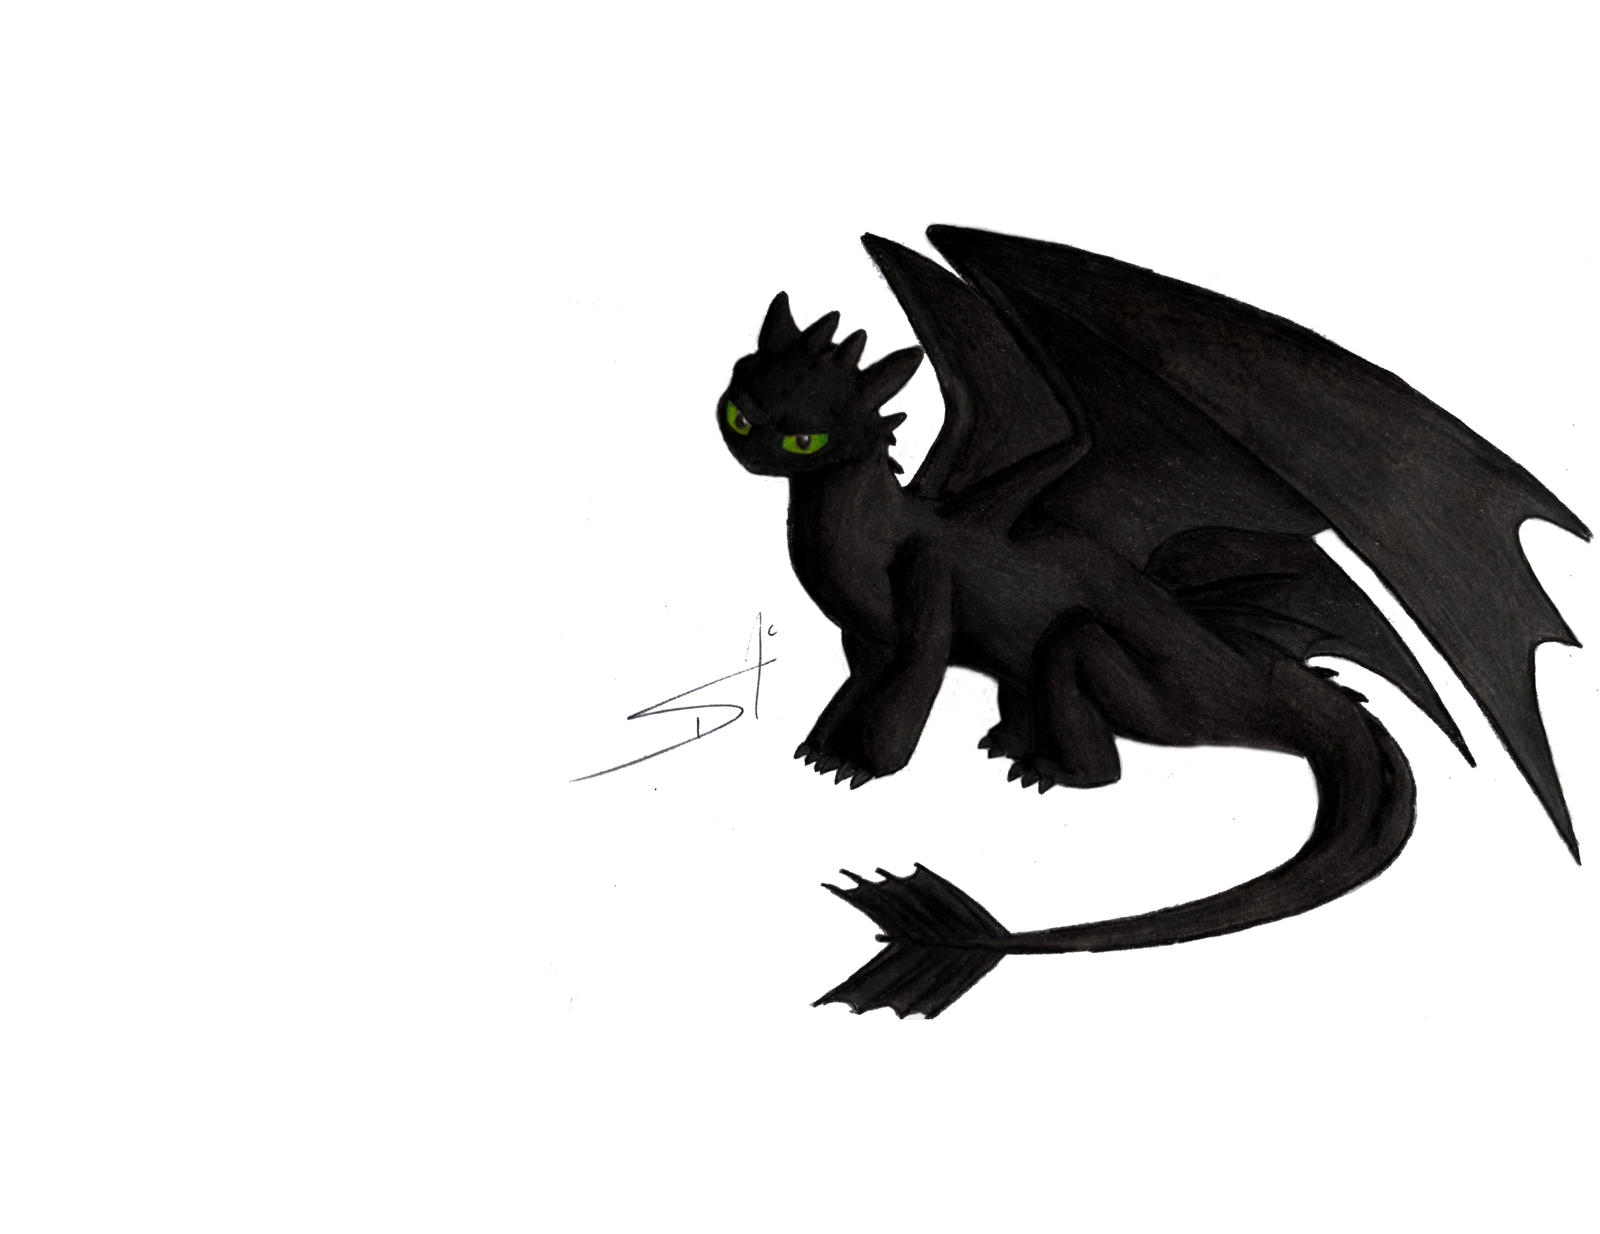 aw is toothless by DSA09